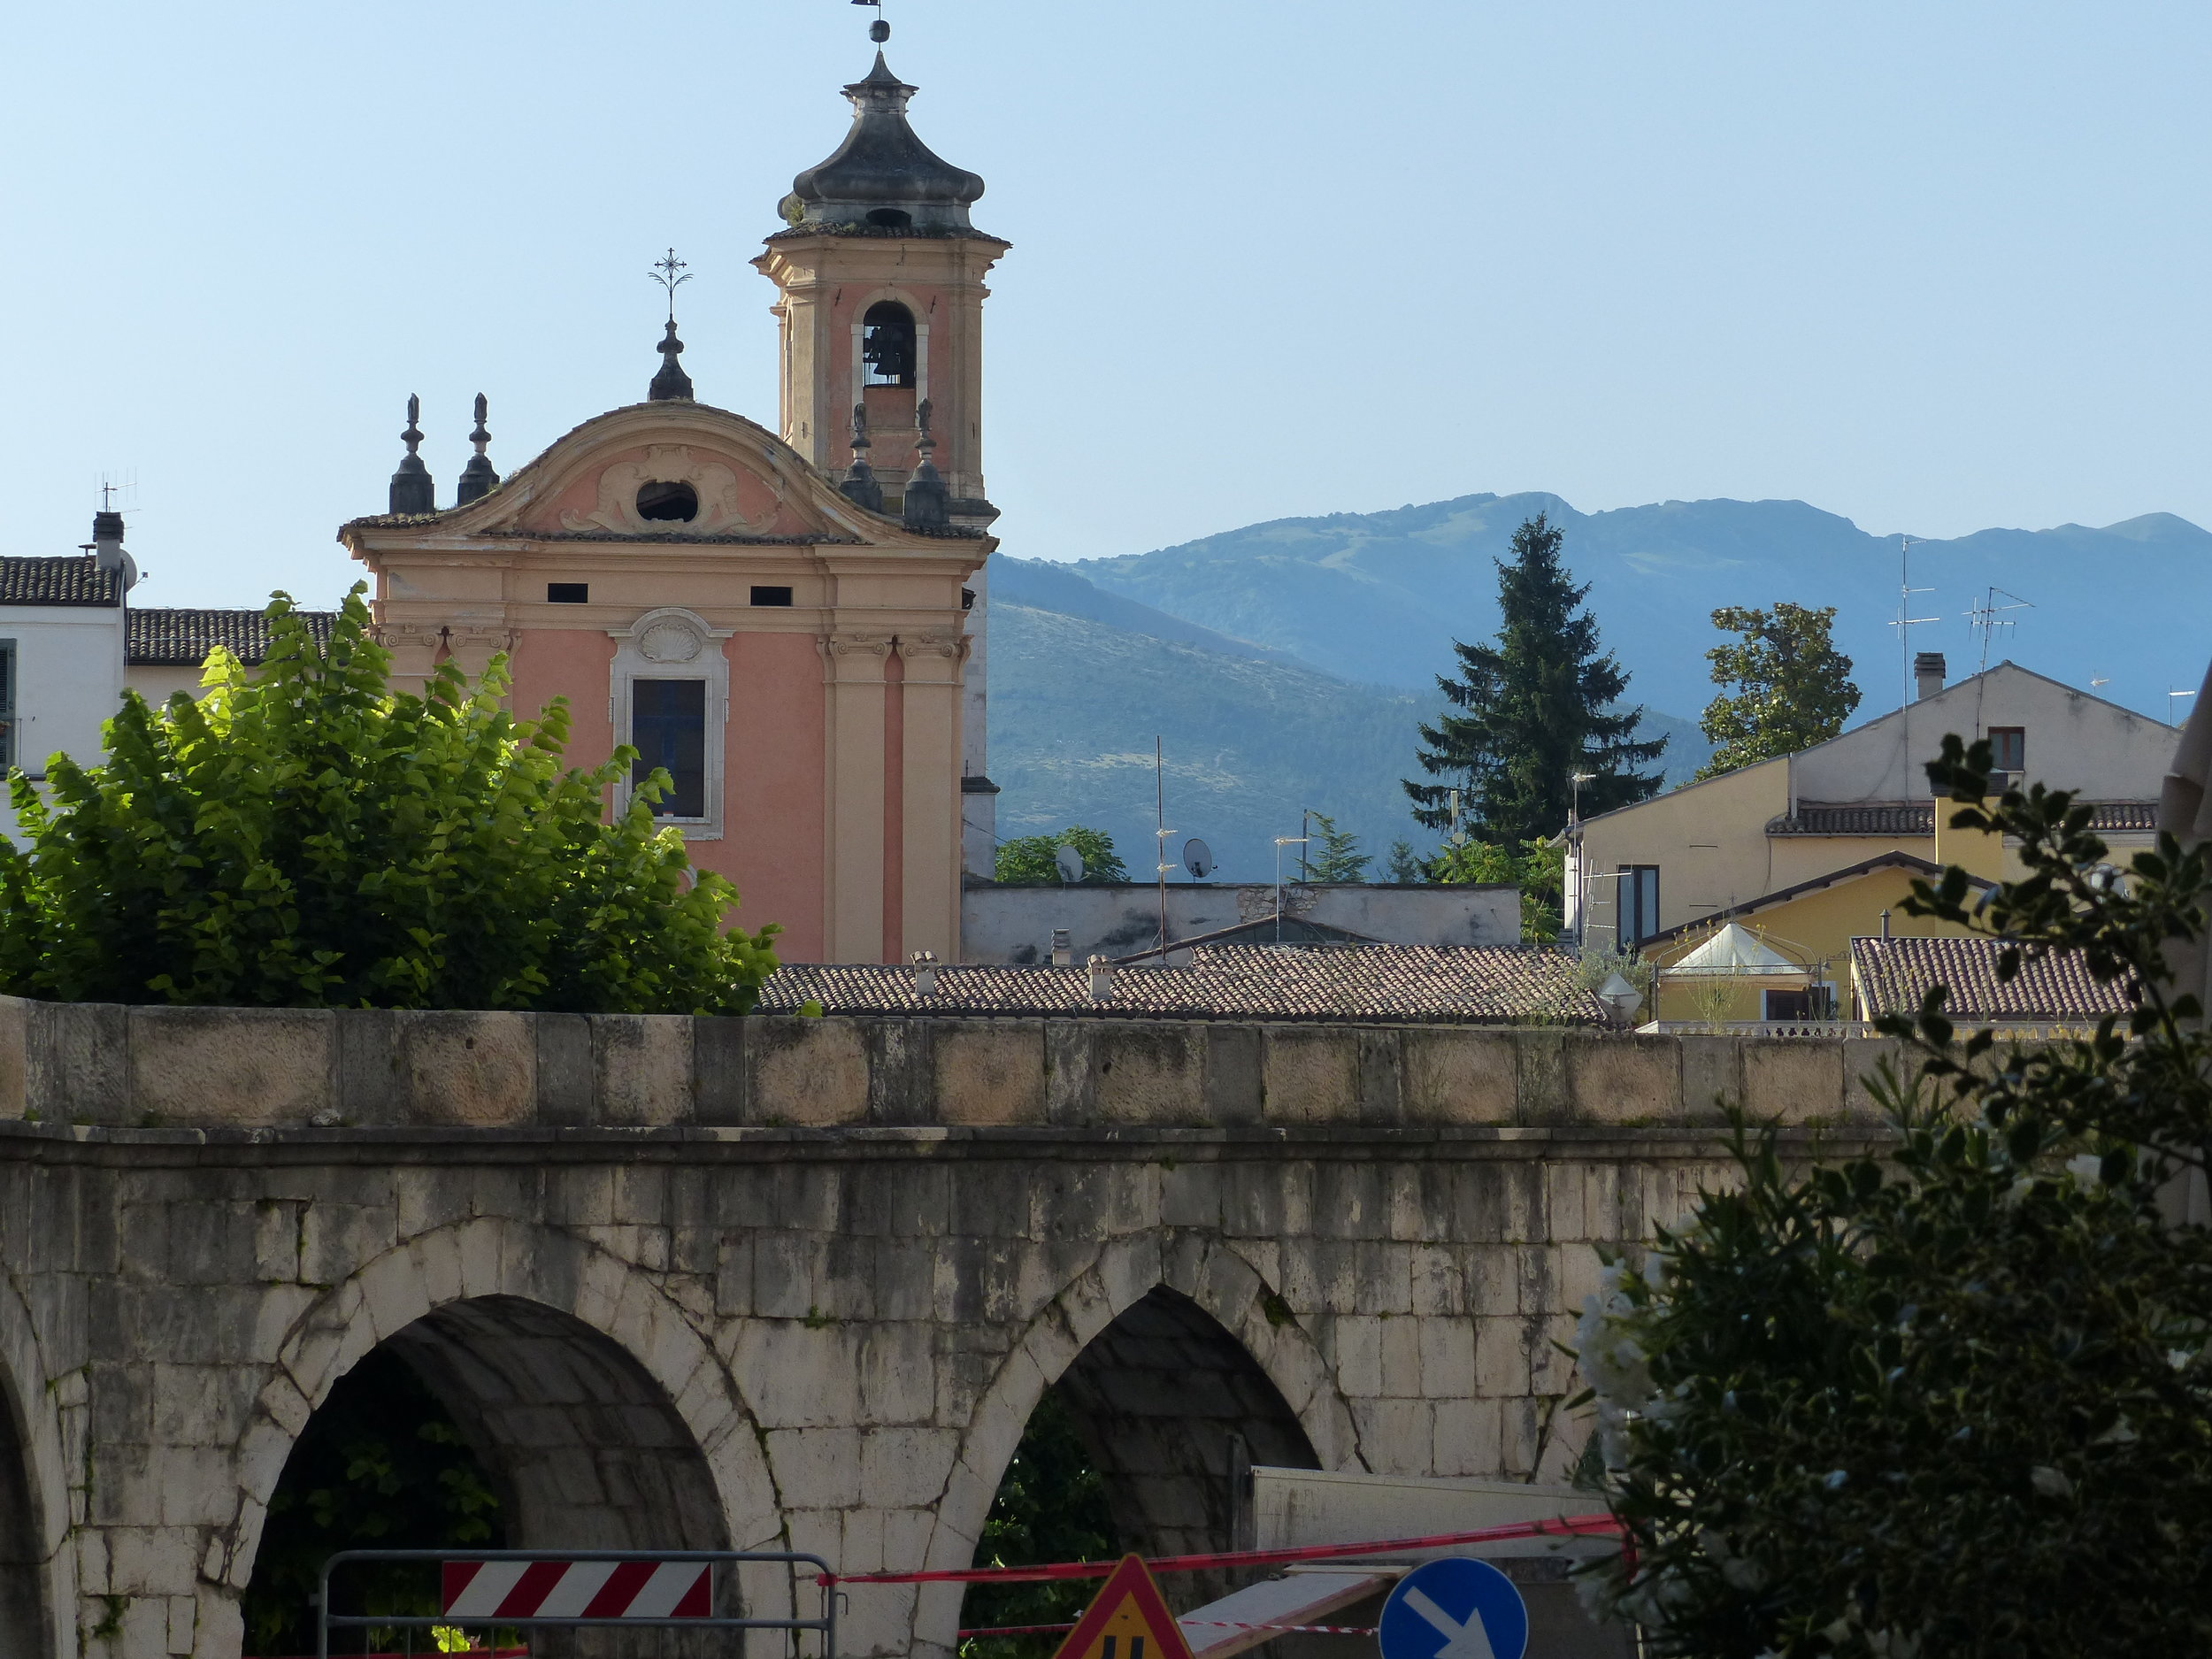 Another aqueduct view